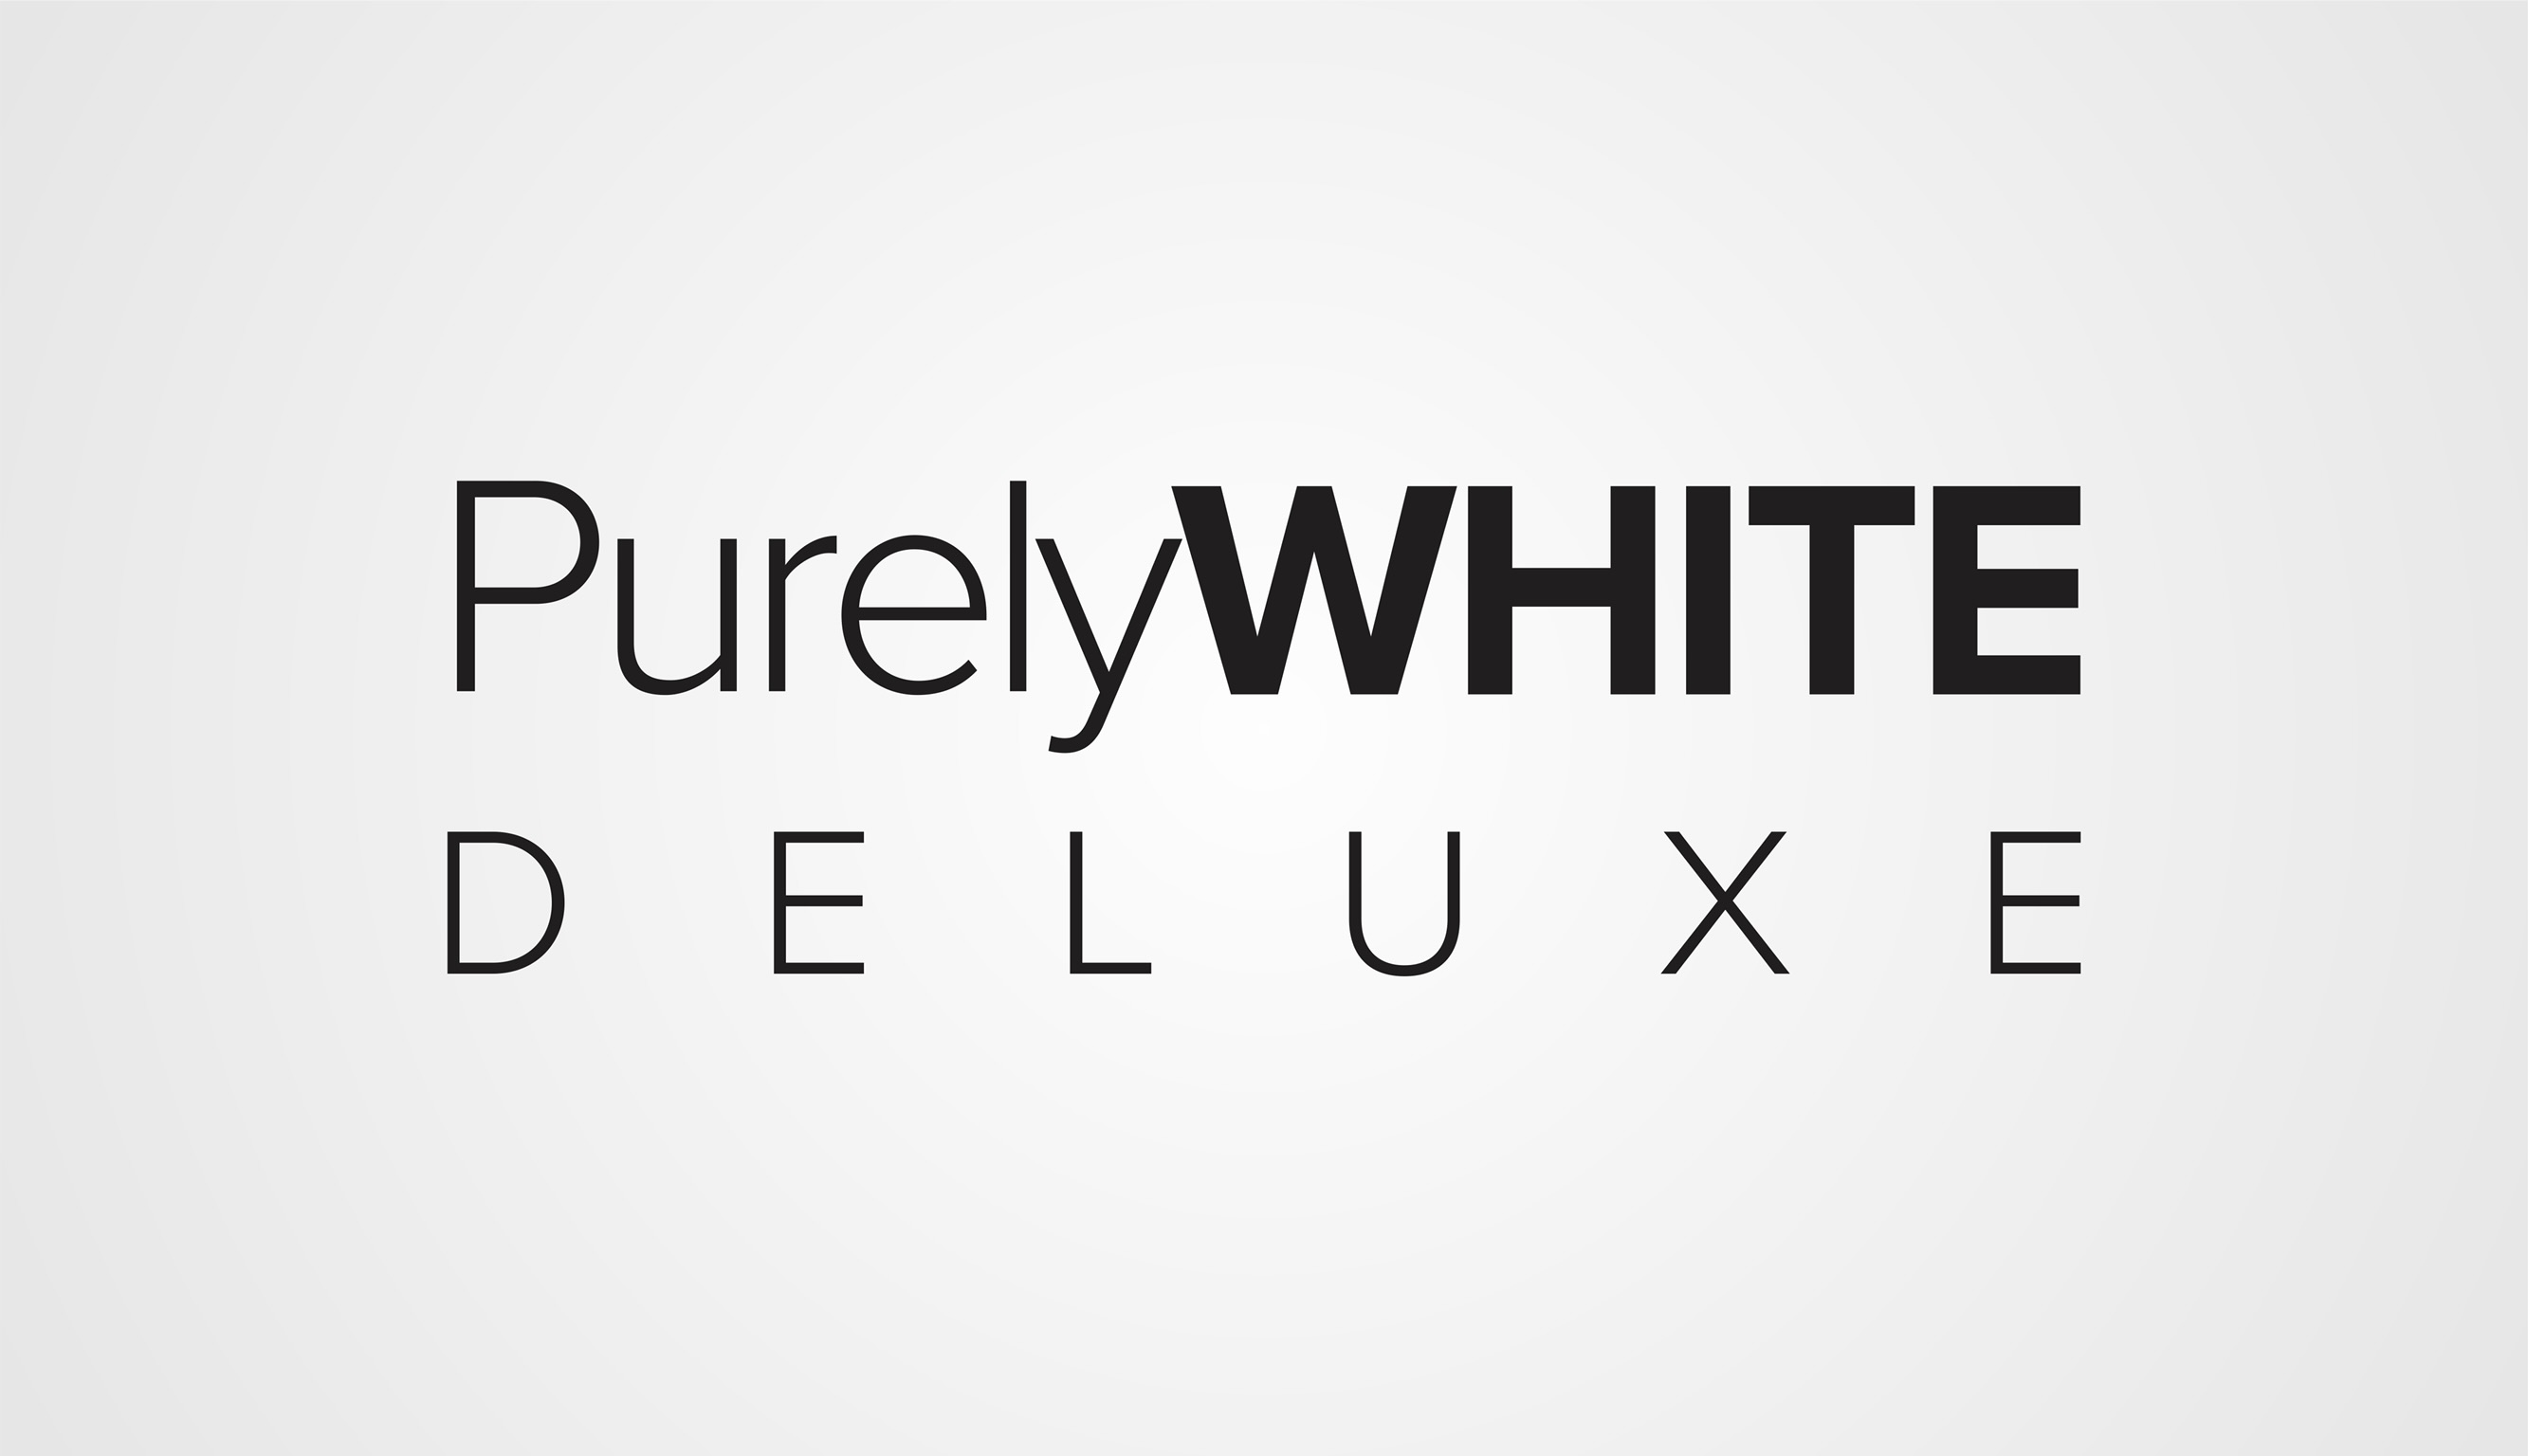 PurelyWHITE DELUXE Dominates as the #1 Recognized Brand On Tiktok.